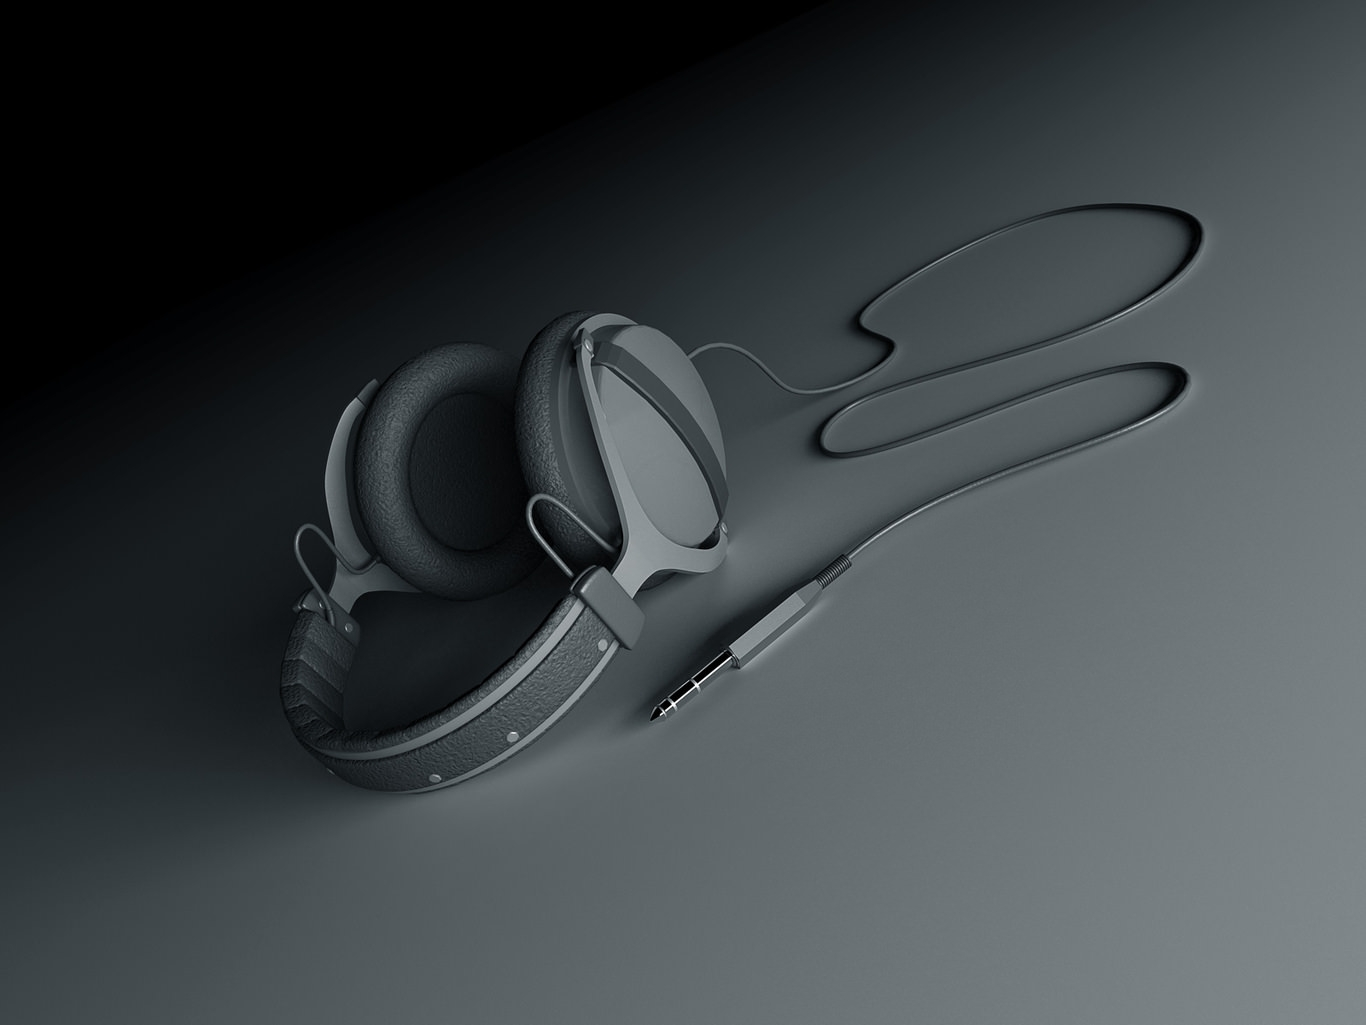 Matte Headphones Wallpaper